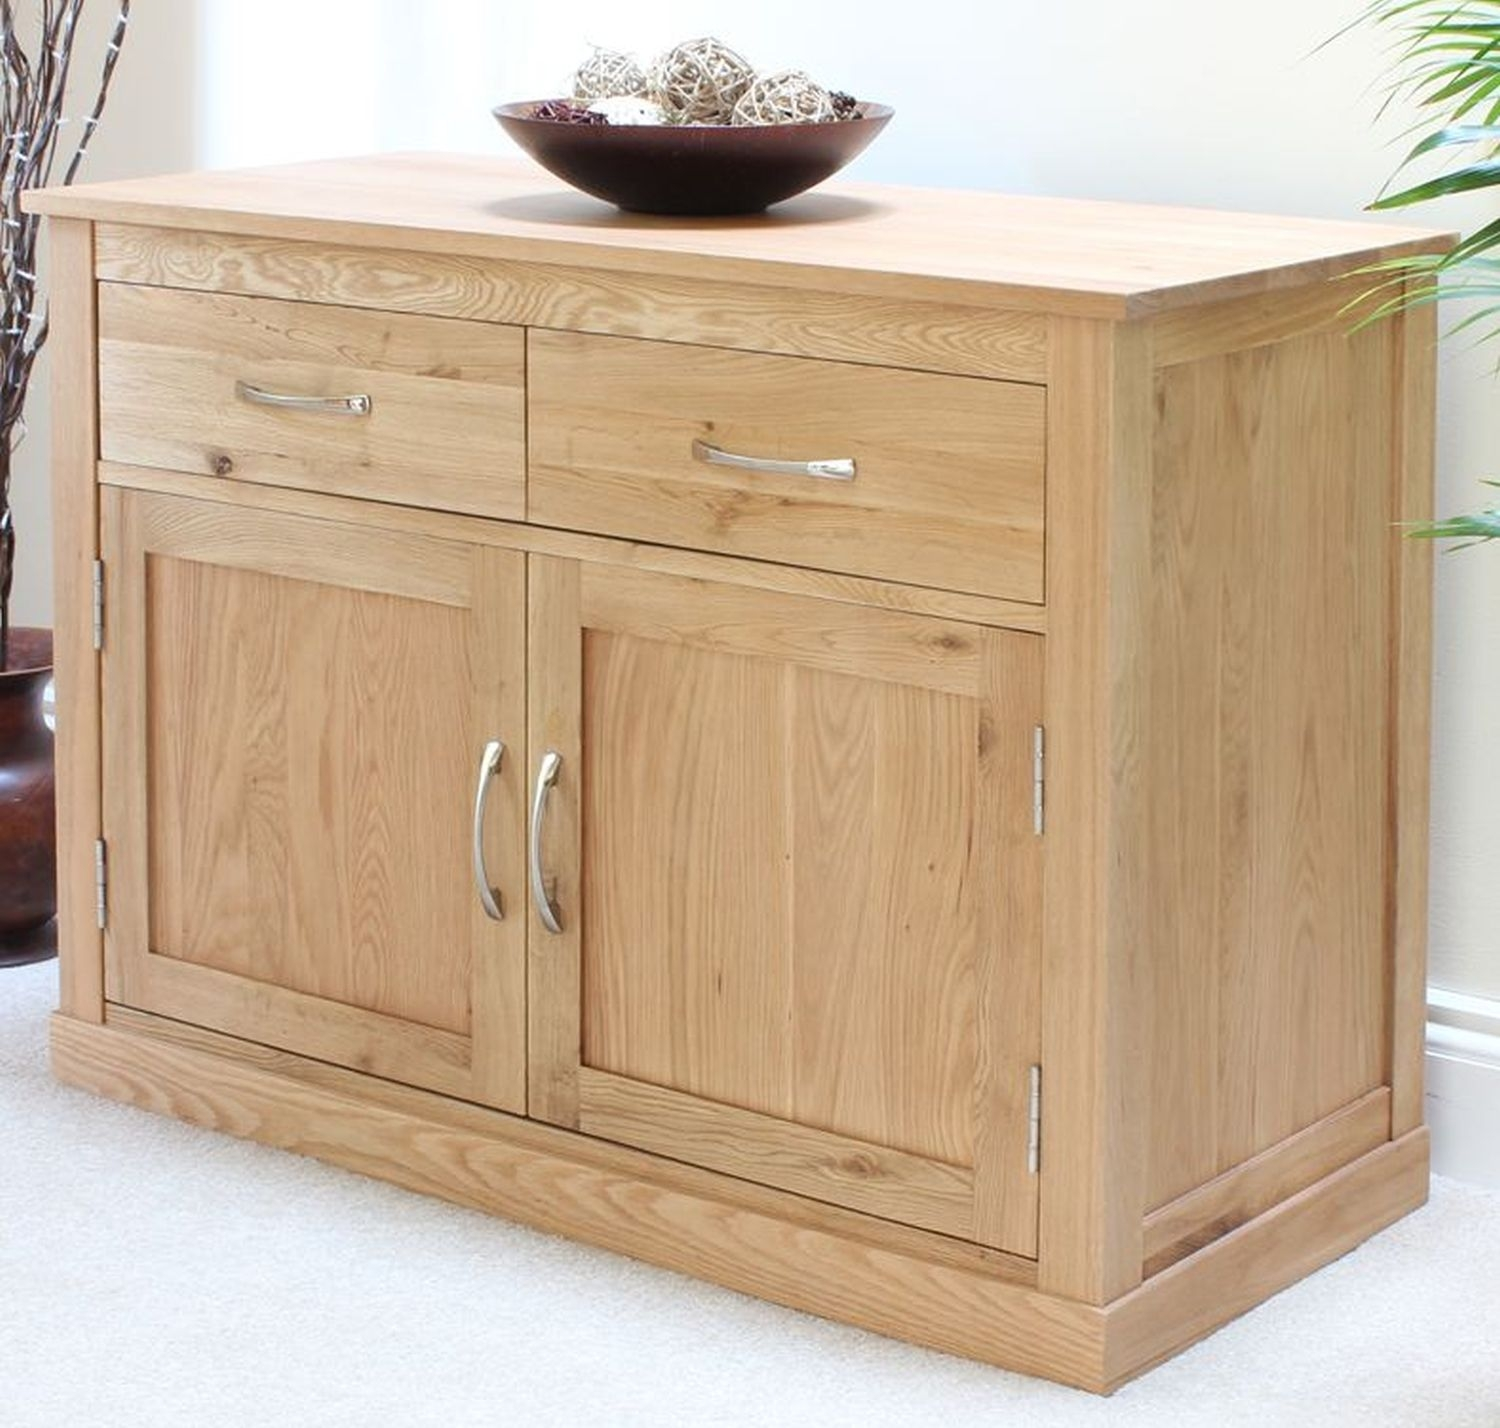 Conran Solid Oak Furniture Sideboard Small Living Dining Room Storage Cabinet  Ebay